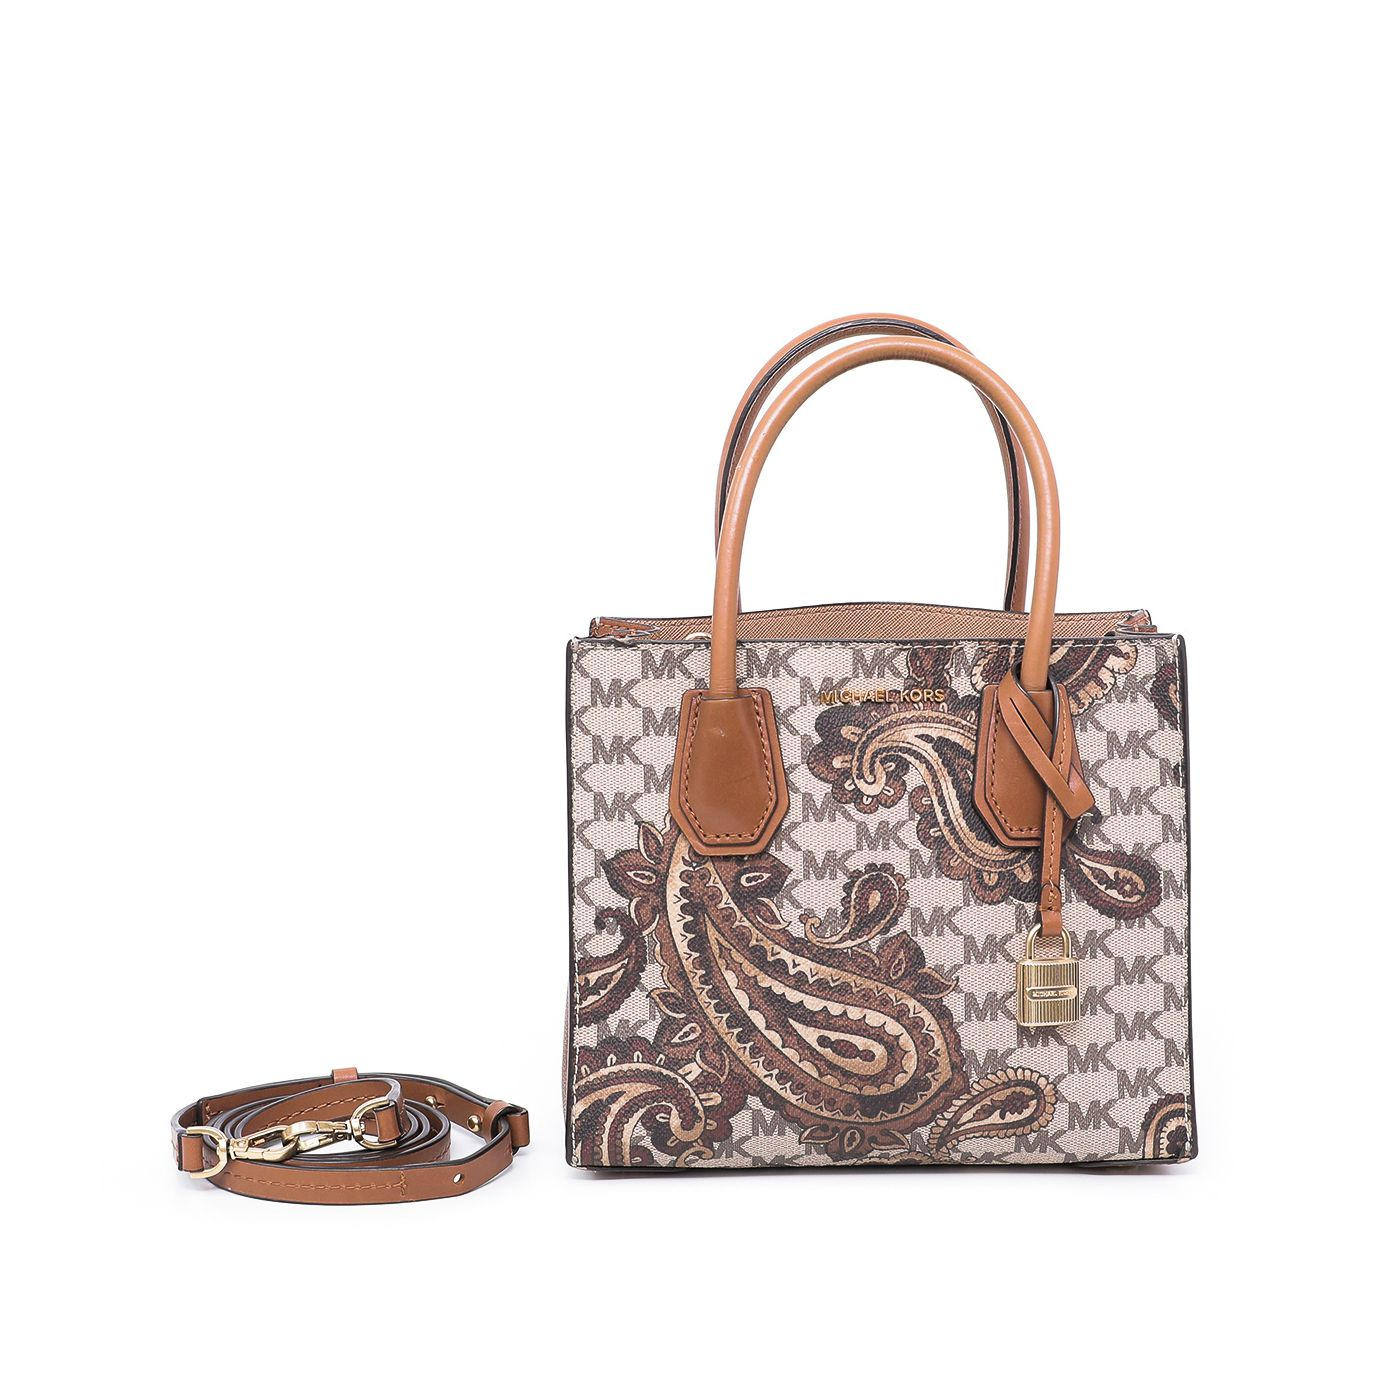 Michael Kors Beige Monogram Paisley Mercer Medium